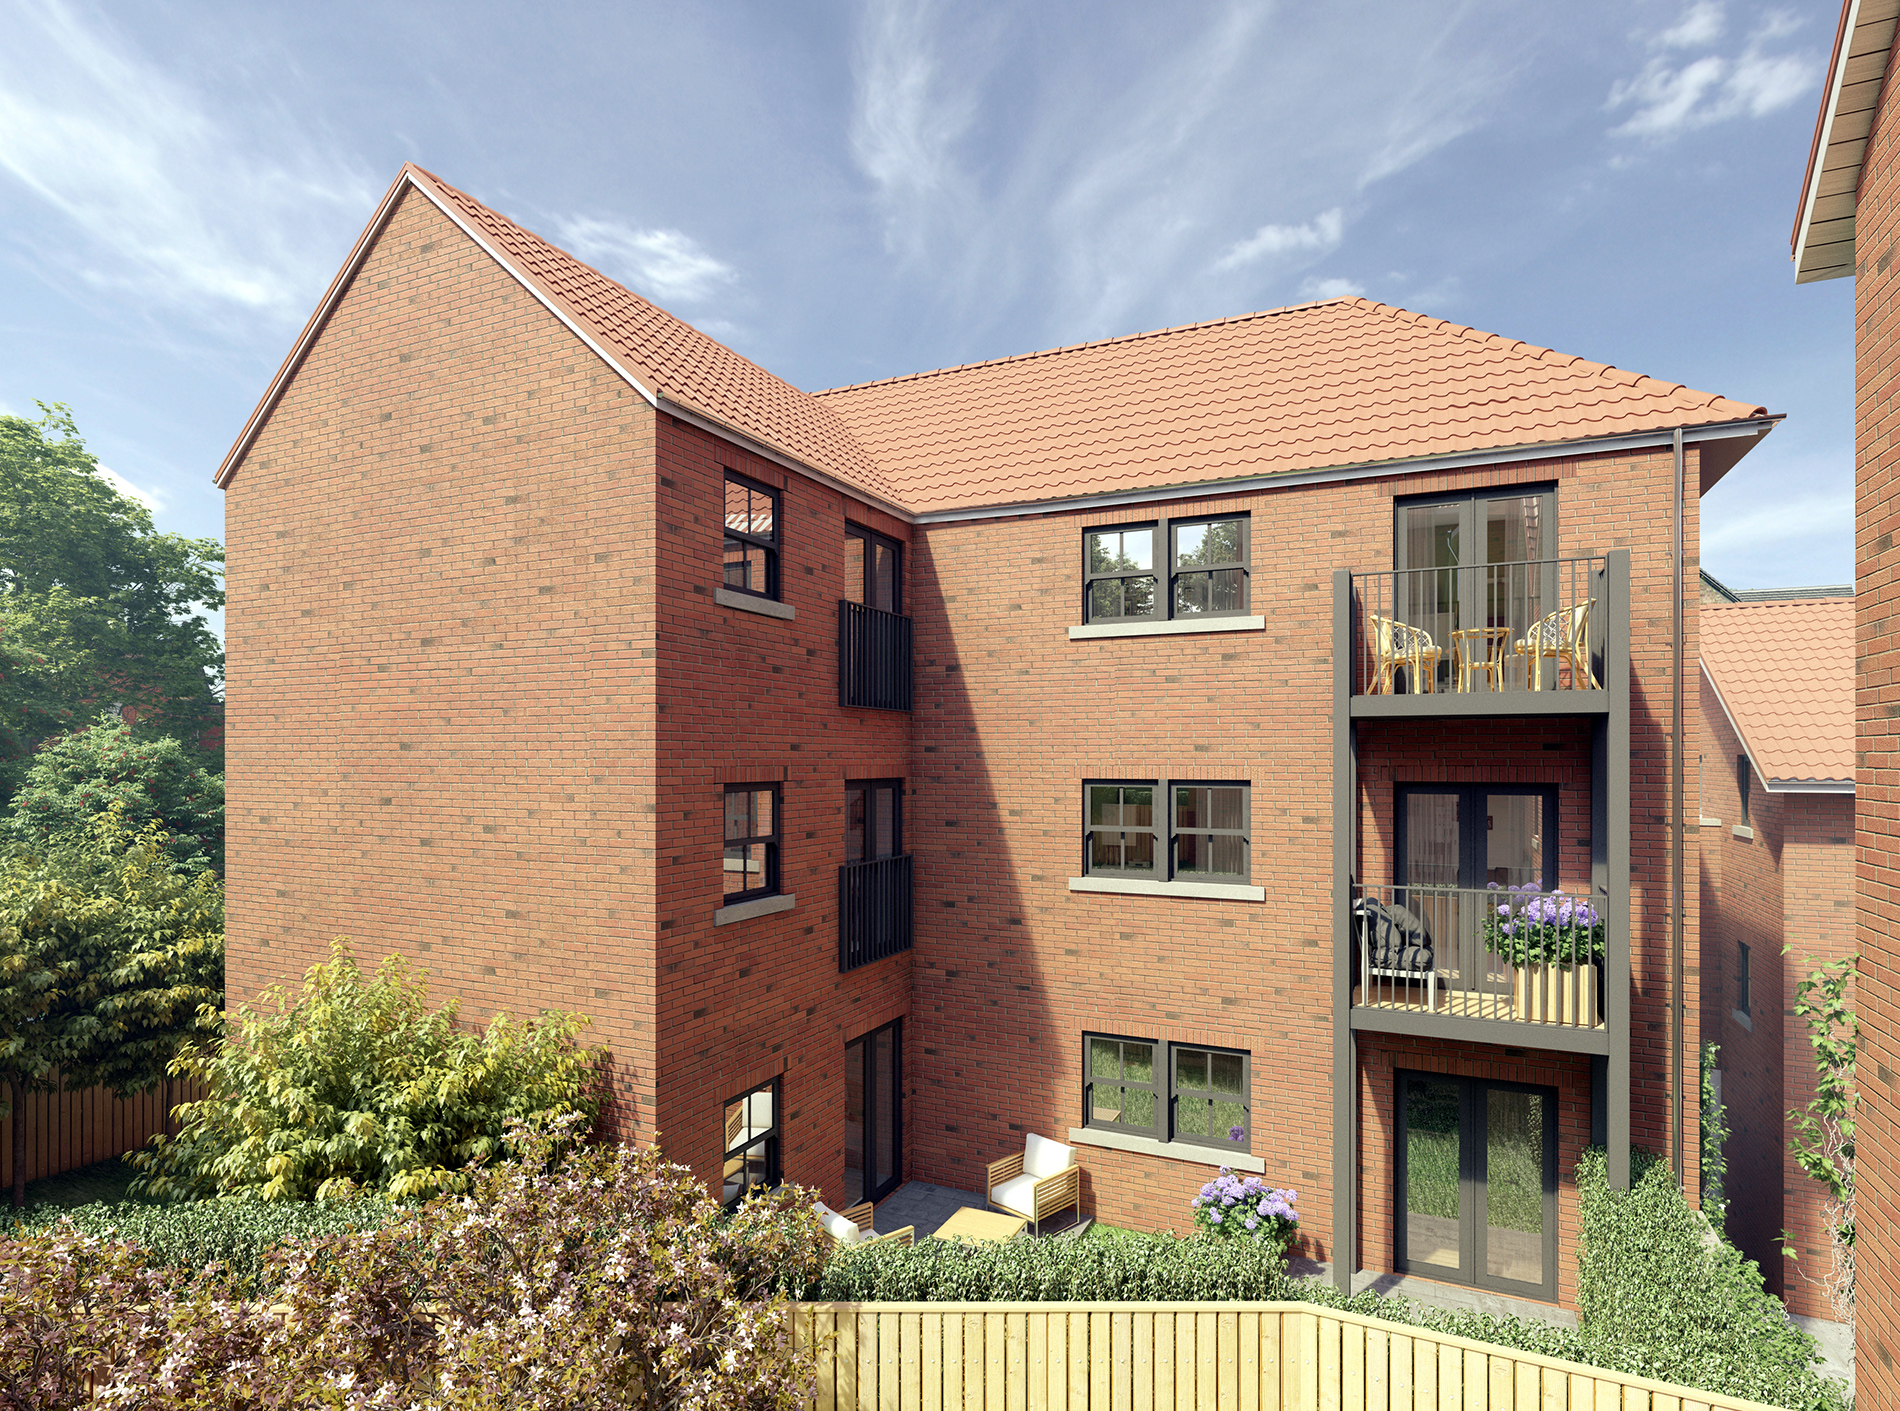 Spa Well Court, Whitby Housing 4